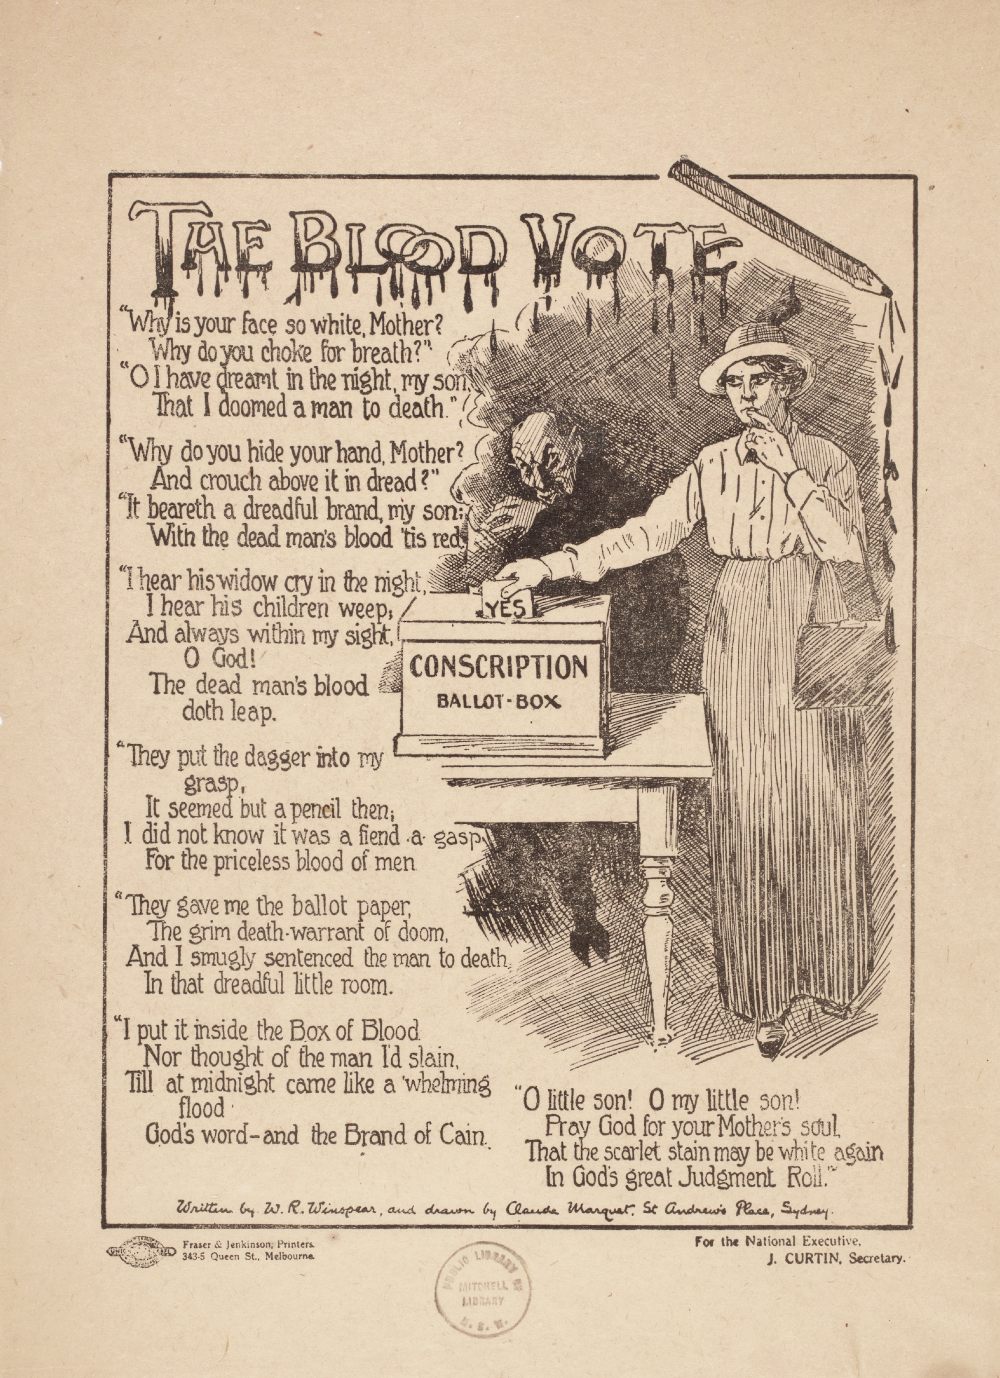 The 'Blood Vote' poster